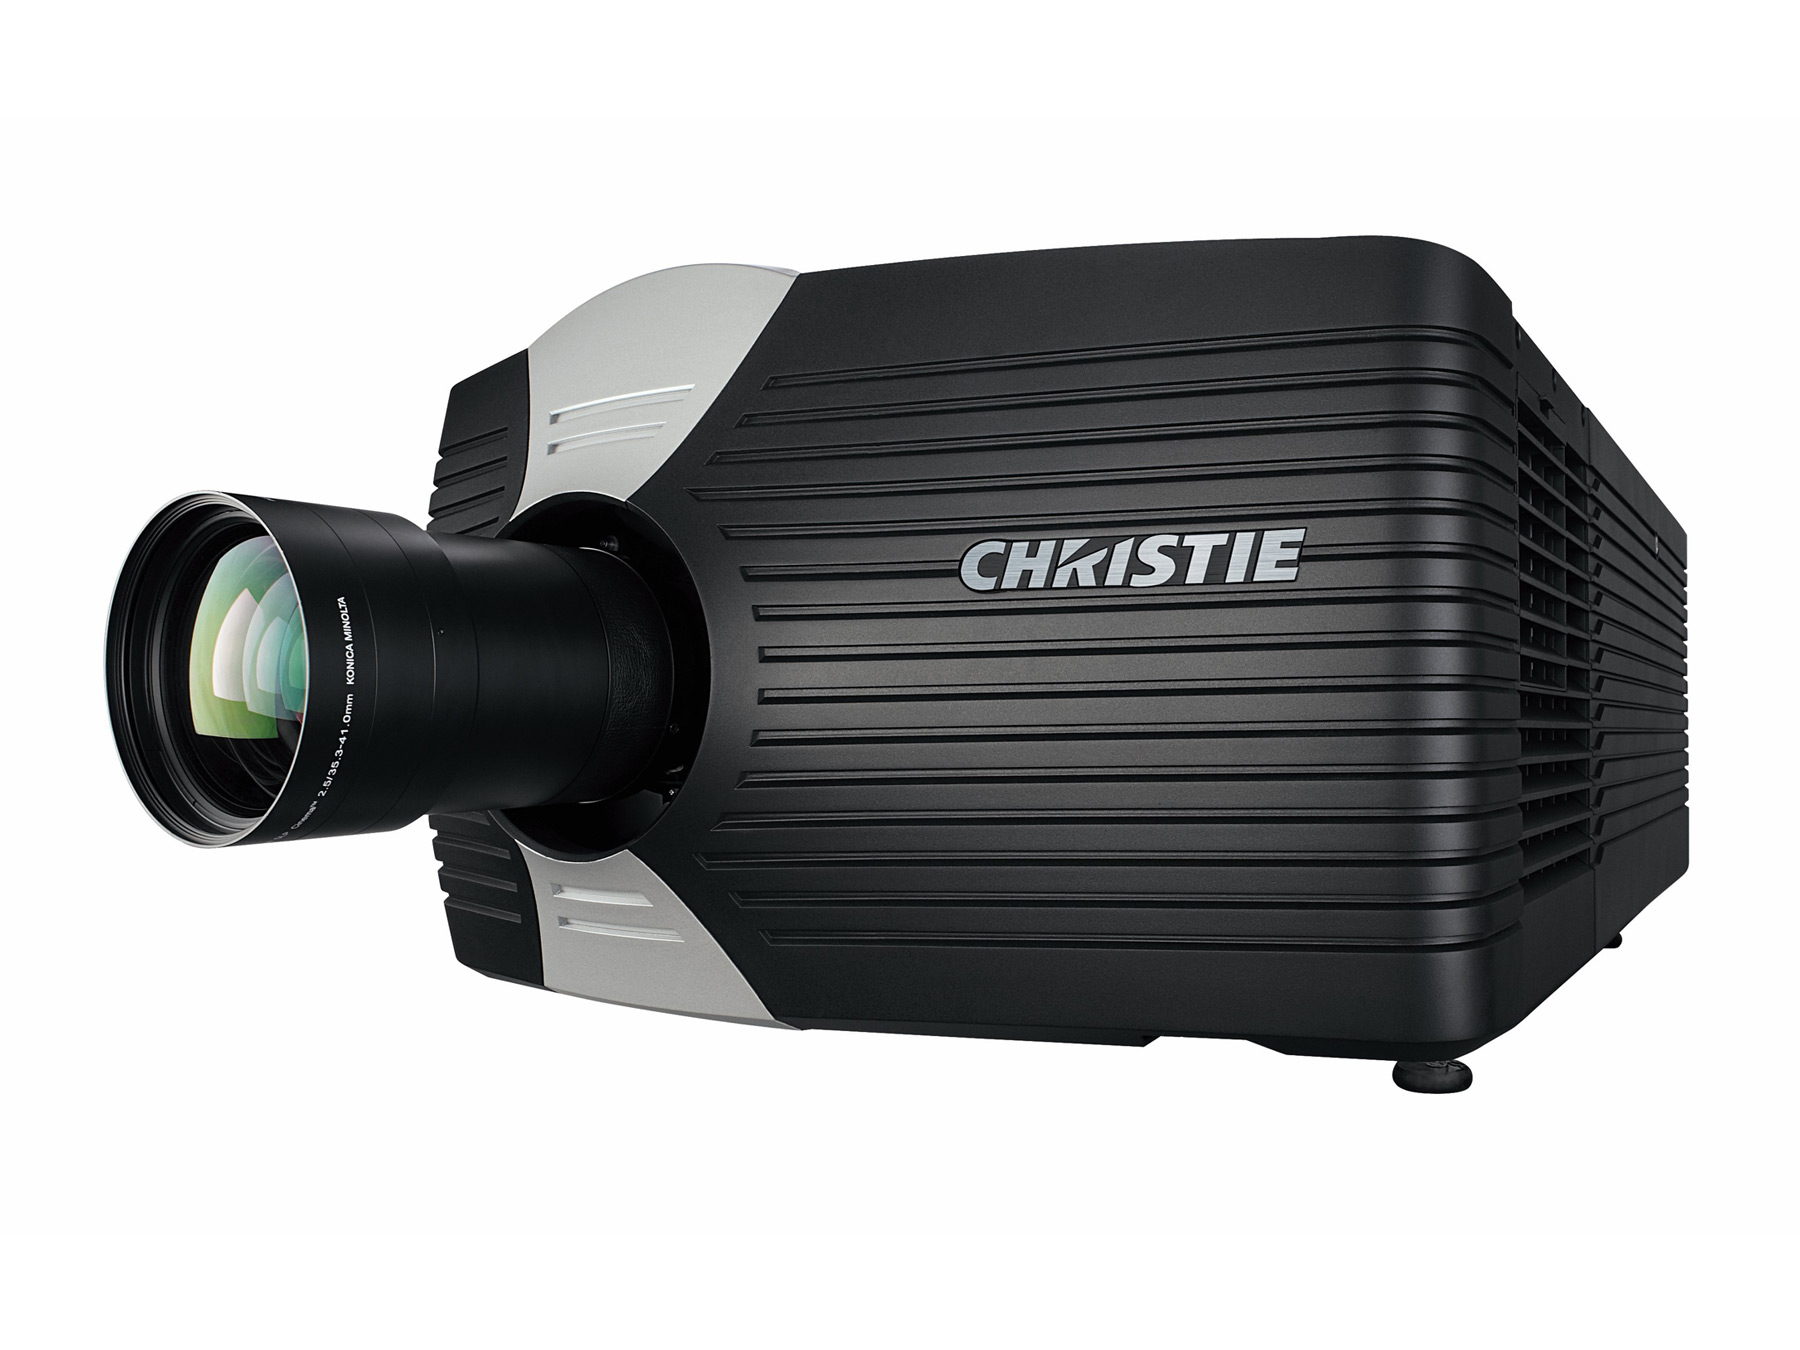 /globalassets/.catalog/products/images/christie-cp4220/gallery/digital-cinema-projector-4k-image-9.jpg